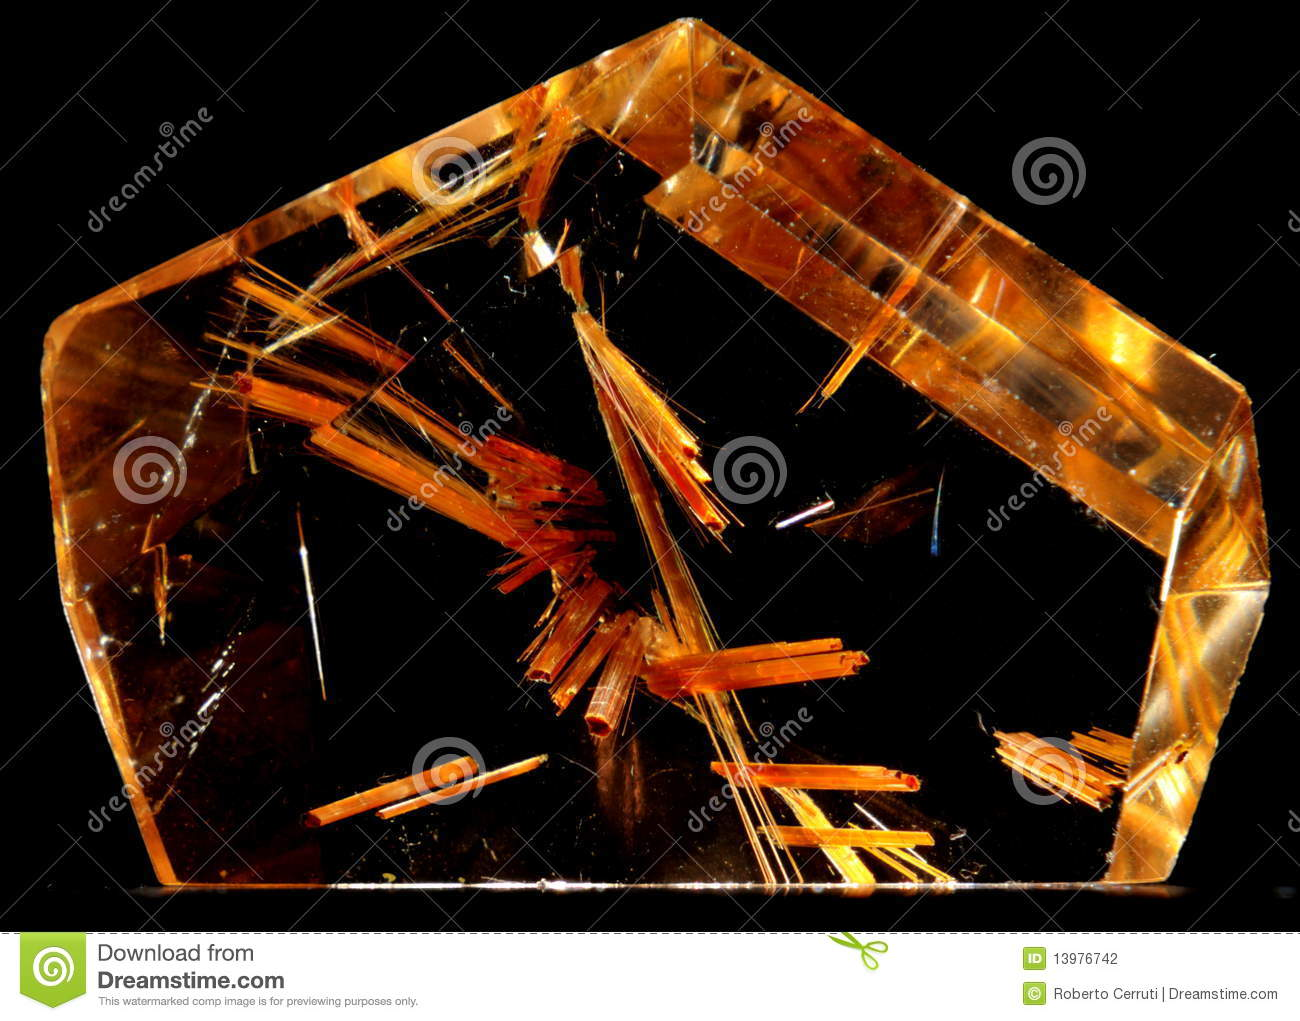 Rutile Included In A Cut And Polished Quartz Crystal Isolated On Black